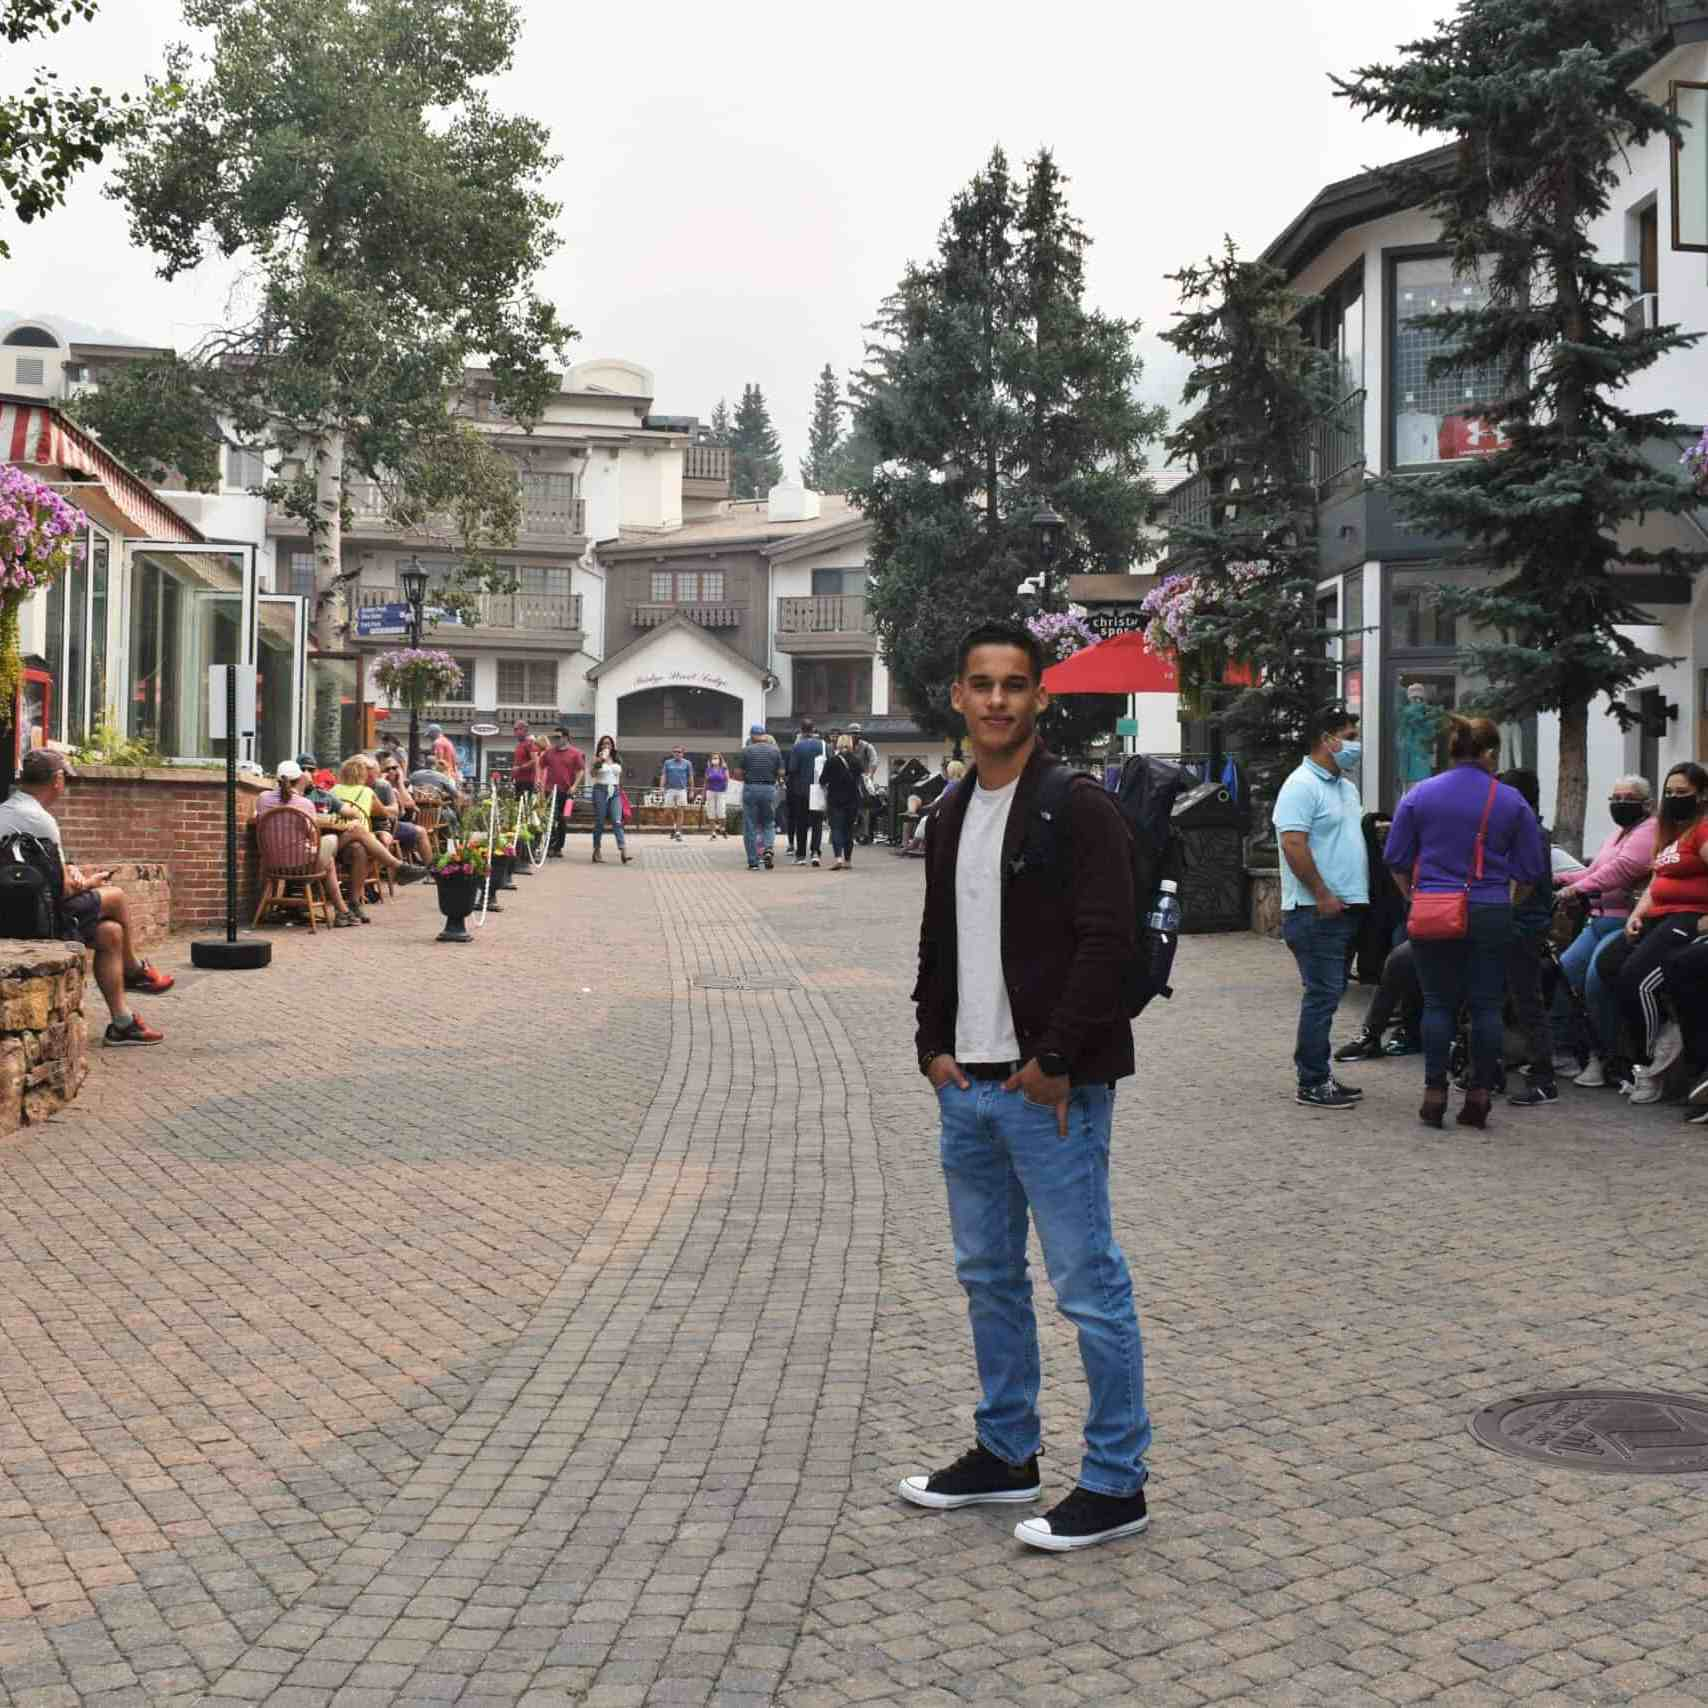 Walking around Vail Village